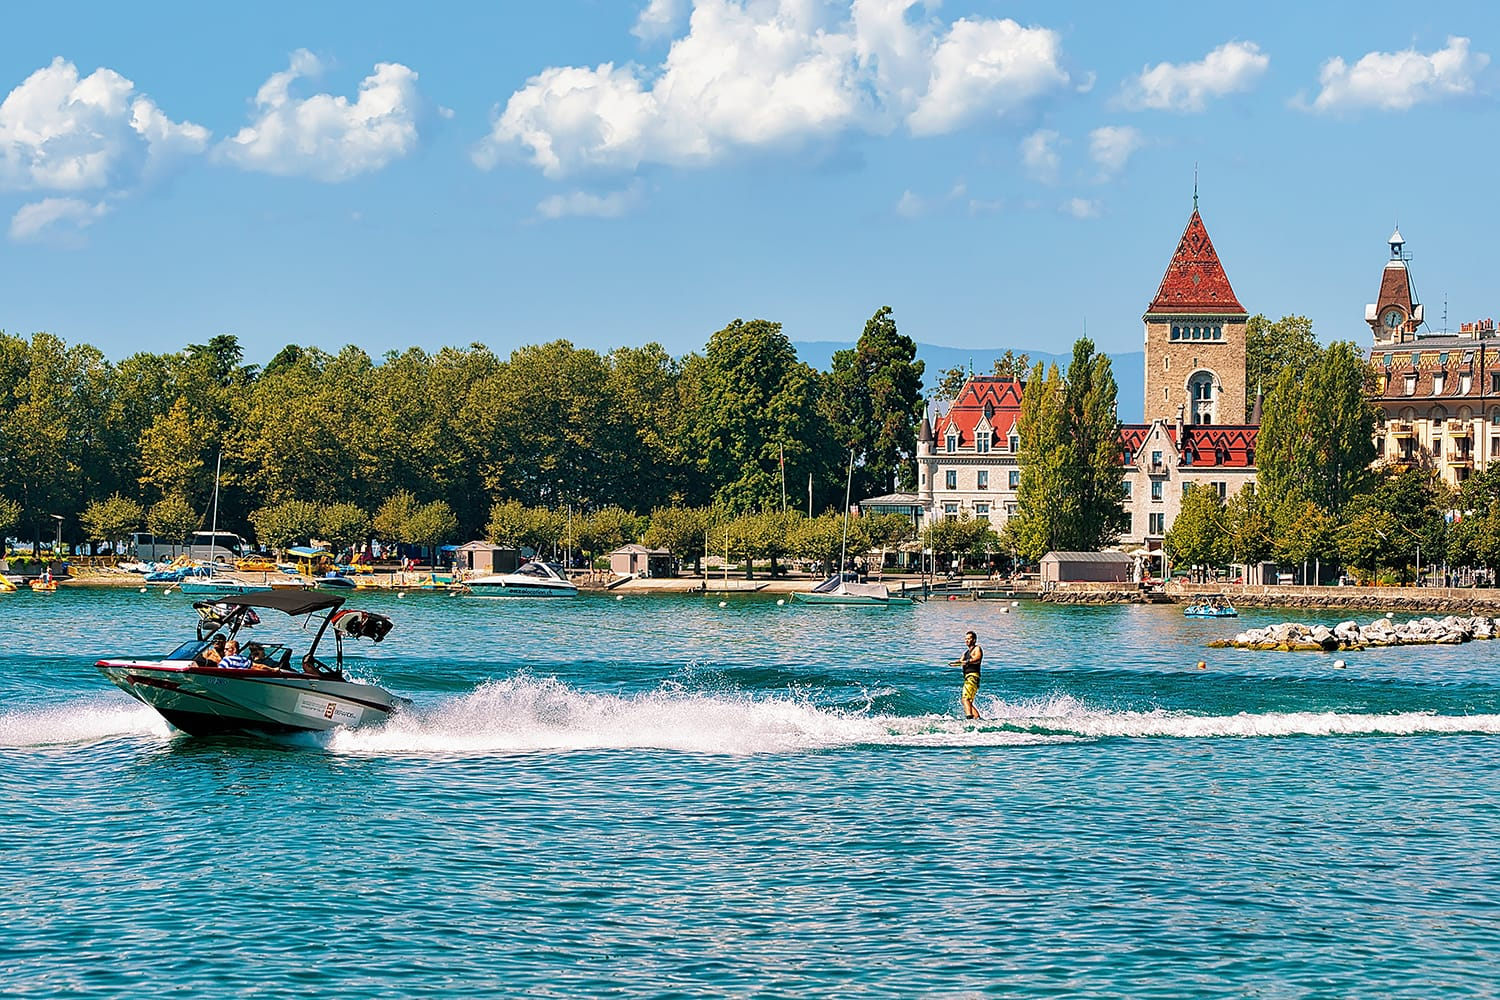 Motorboat with man wakeboarding on Lake Geneva embankment near Chateau Ouchy in Lausanne, Switzerland.